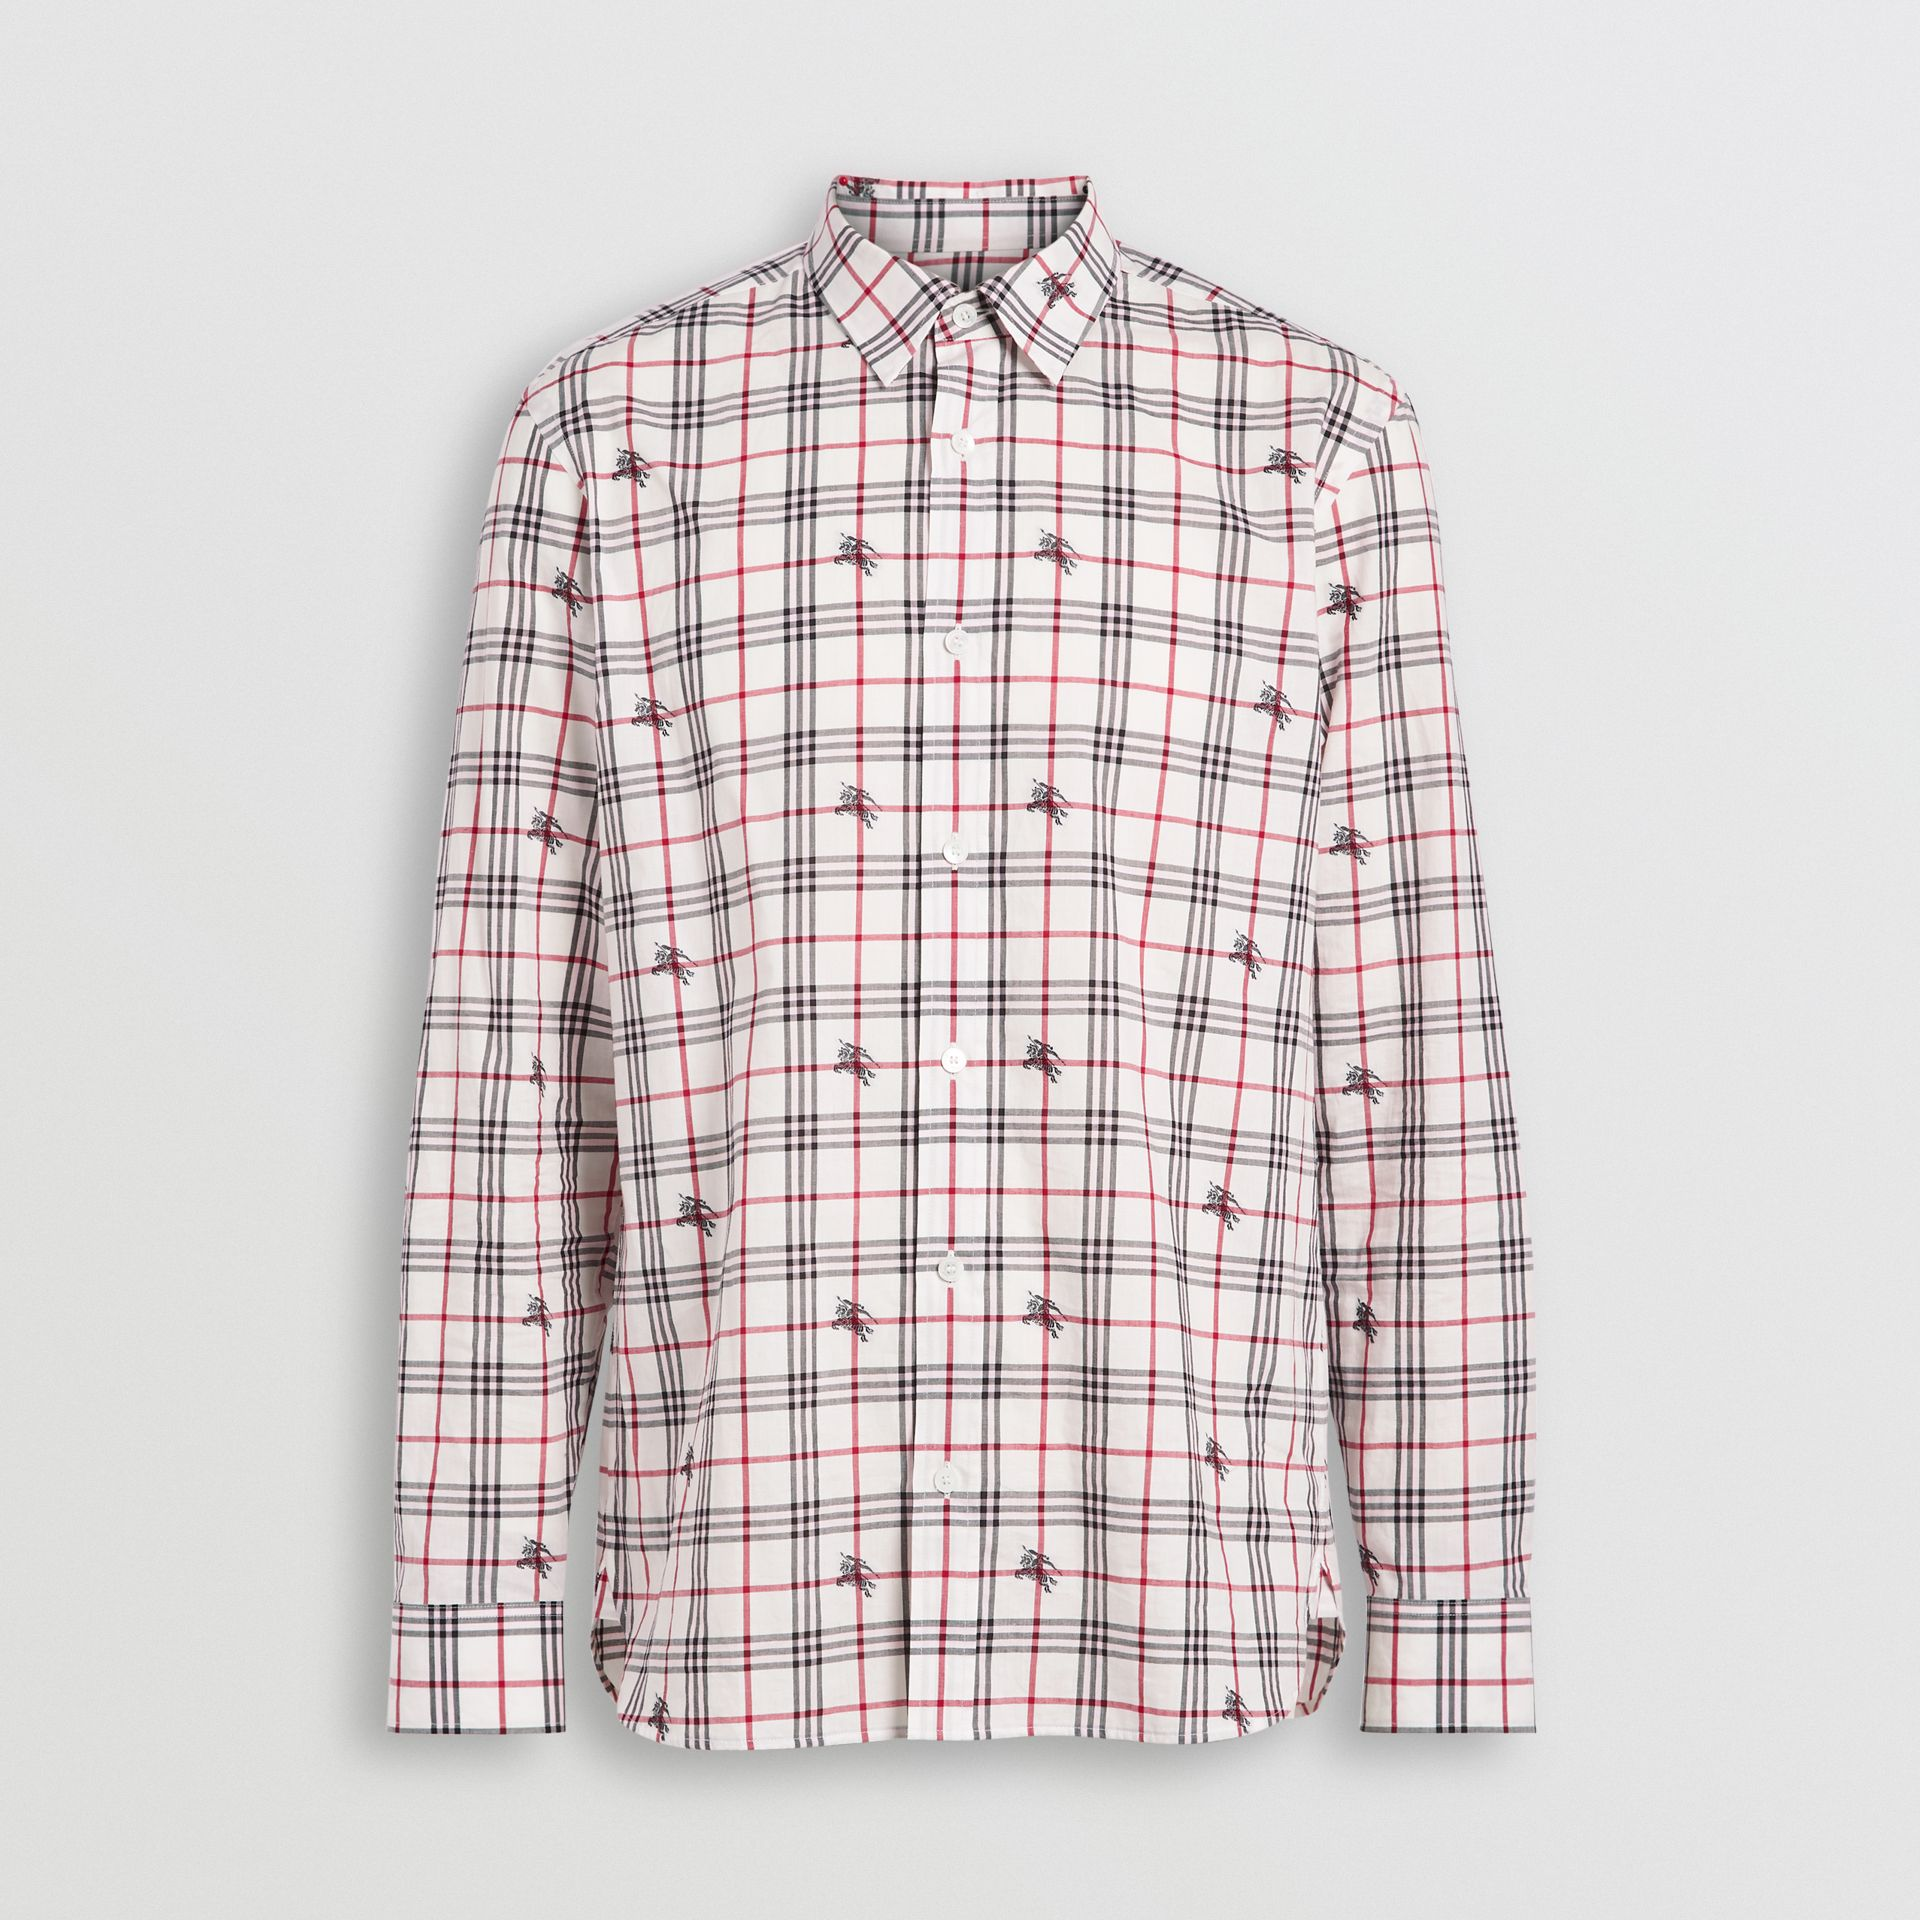 Equestrian Knight Check Cotton Shirt in Natural White - Men | Burberry - gallery image 3